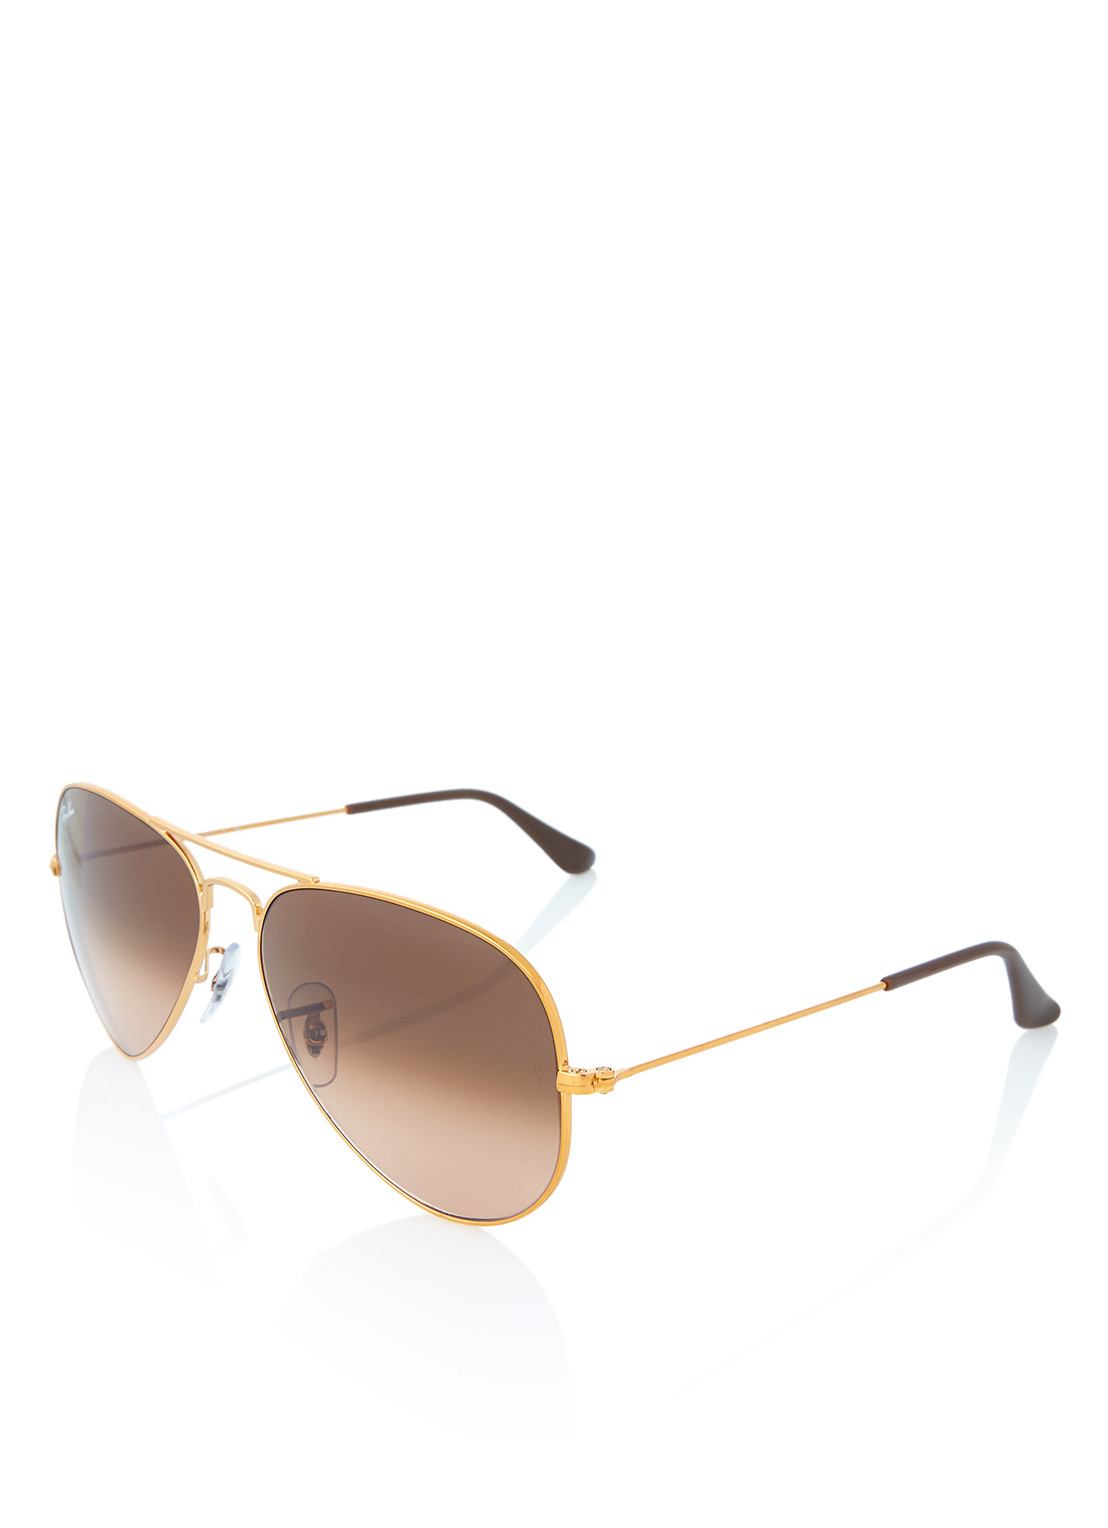 Ray Ban Zonnebril RB3025